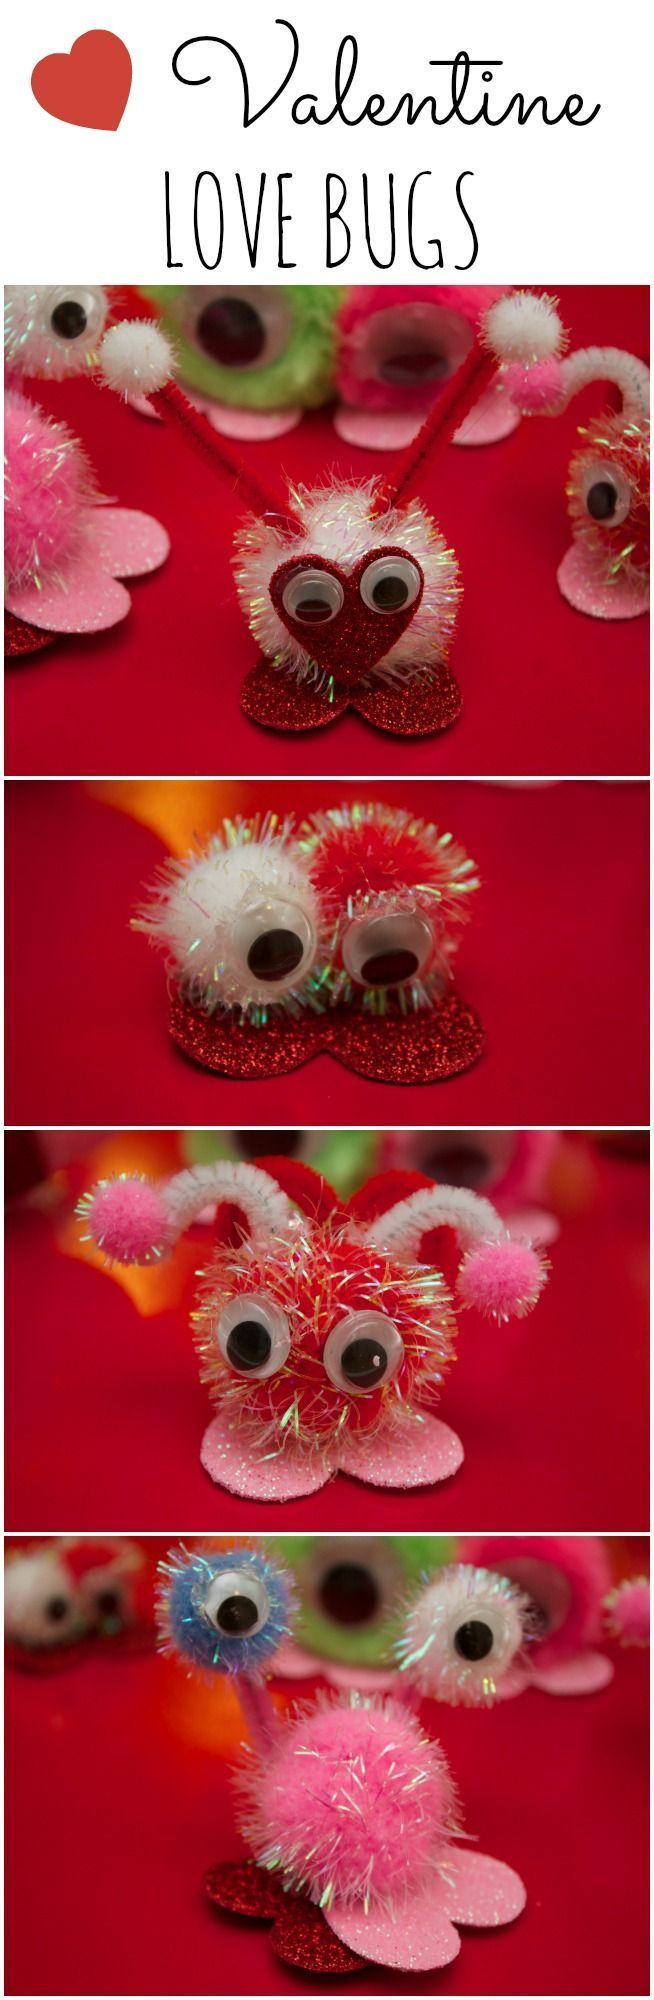 LOVE BUGS! Valentine Craft Ideas For Kids. Valentine Love Bugs are a simple craft that is perfect for preschoolers and older kids as well.